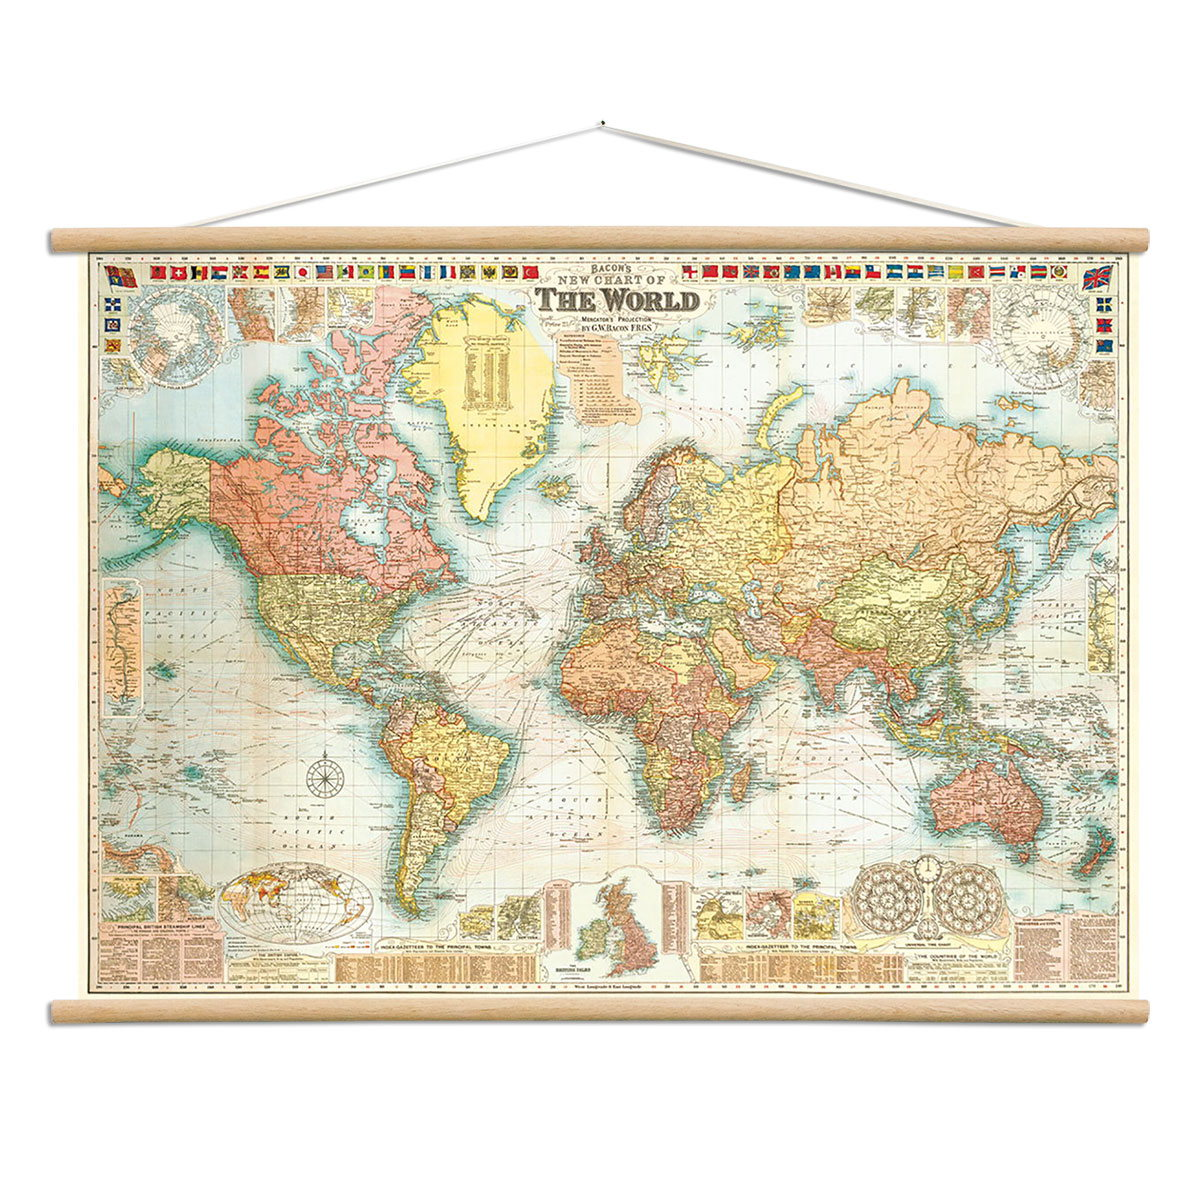 Bacons world map vintage style poster with hanger kit decorative bacons world map vintage style poster with hanger kit decorative paper 28 x 20 gumiabroncs Gallery